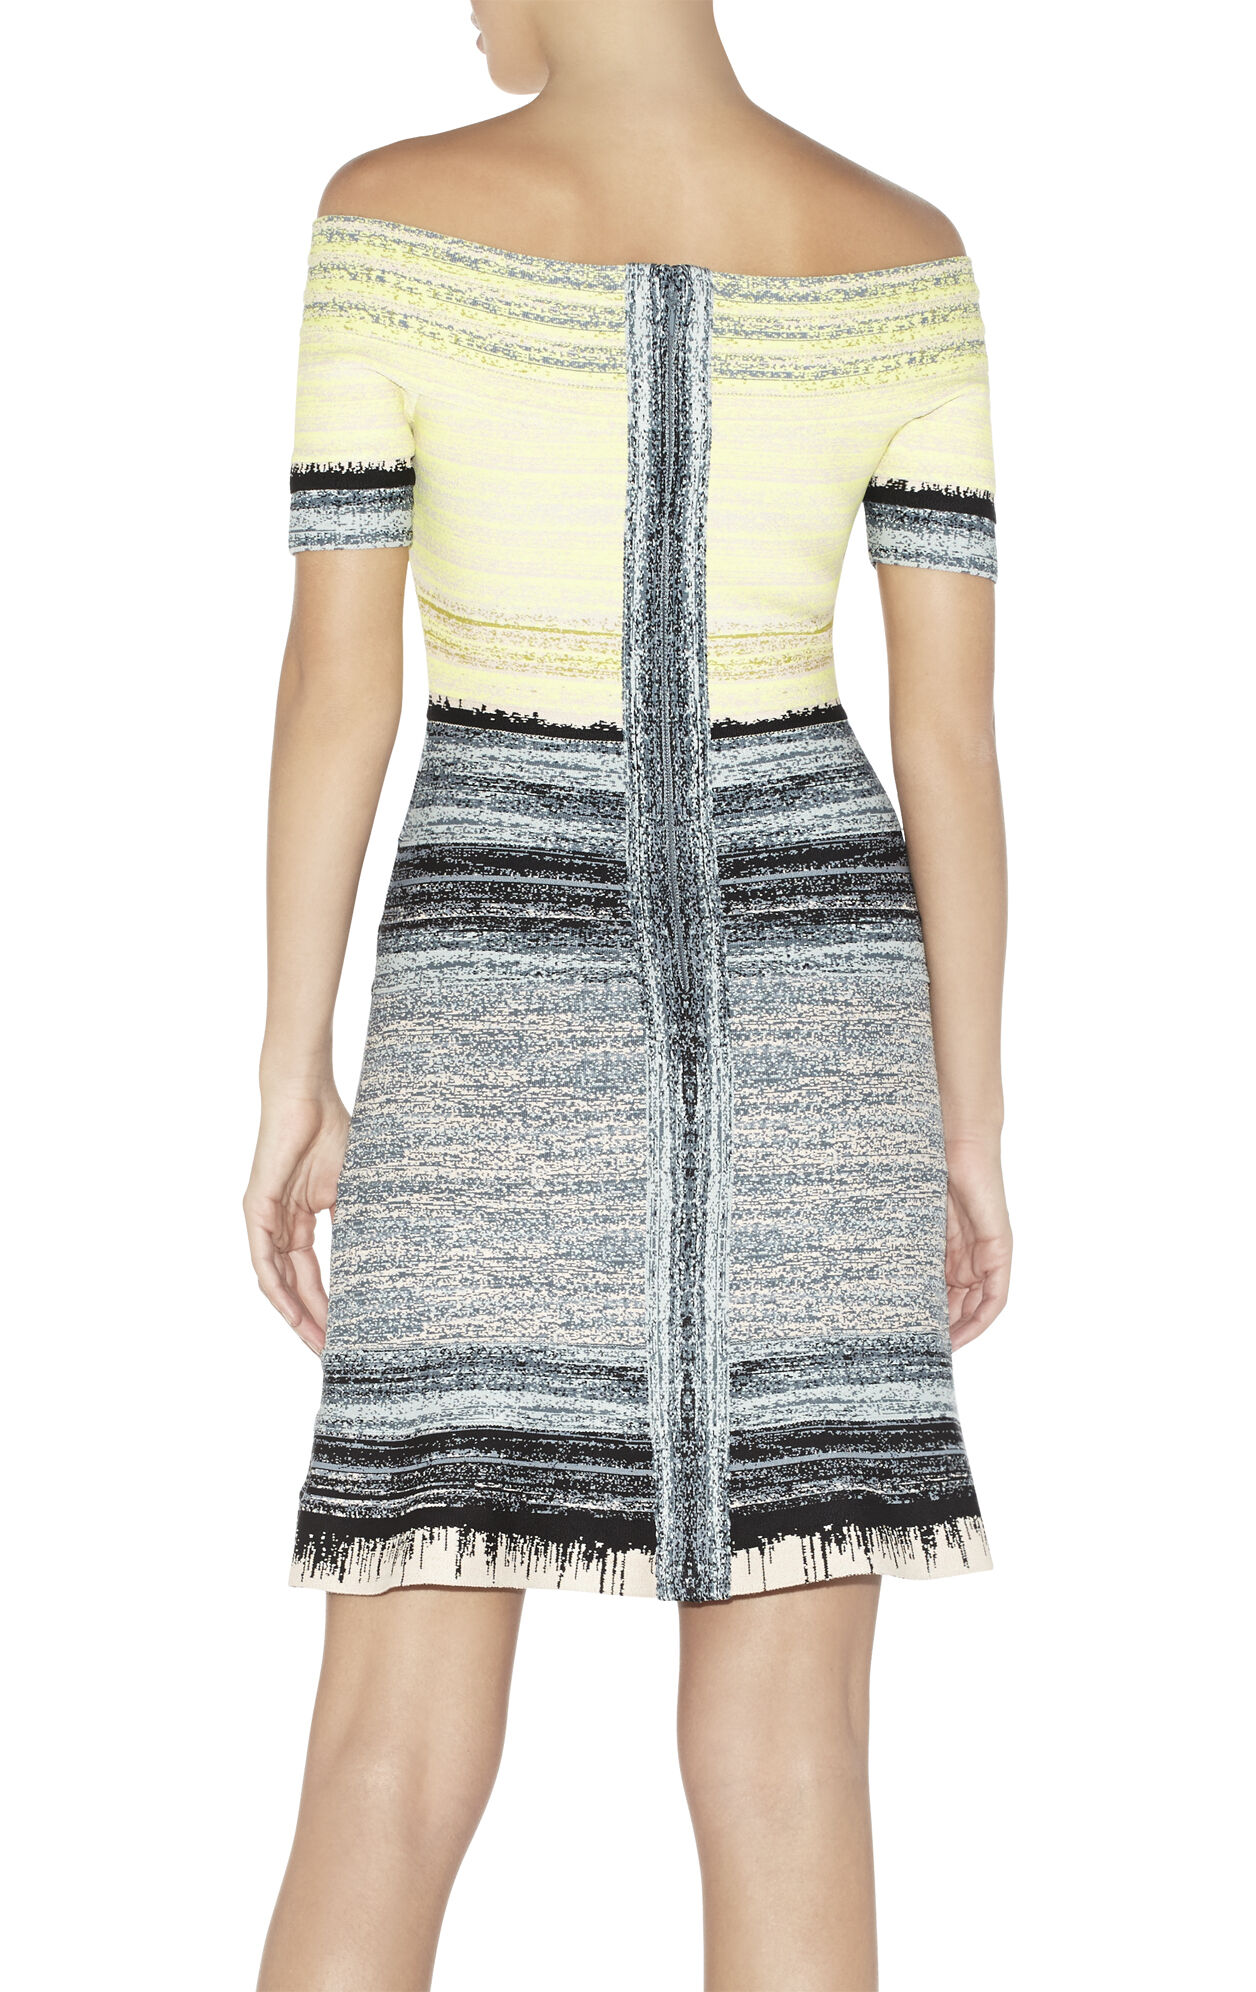 Liza Watercolor Jacquard Ombre Dress